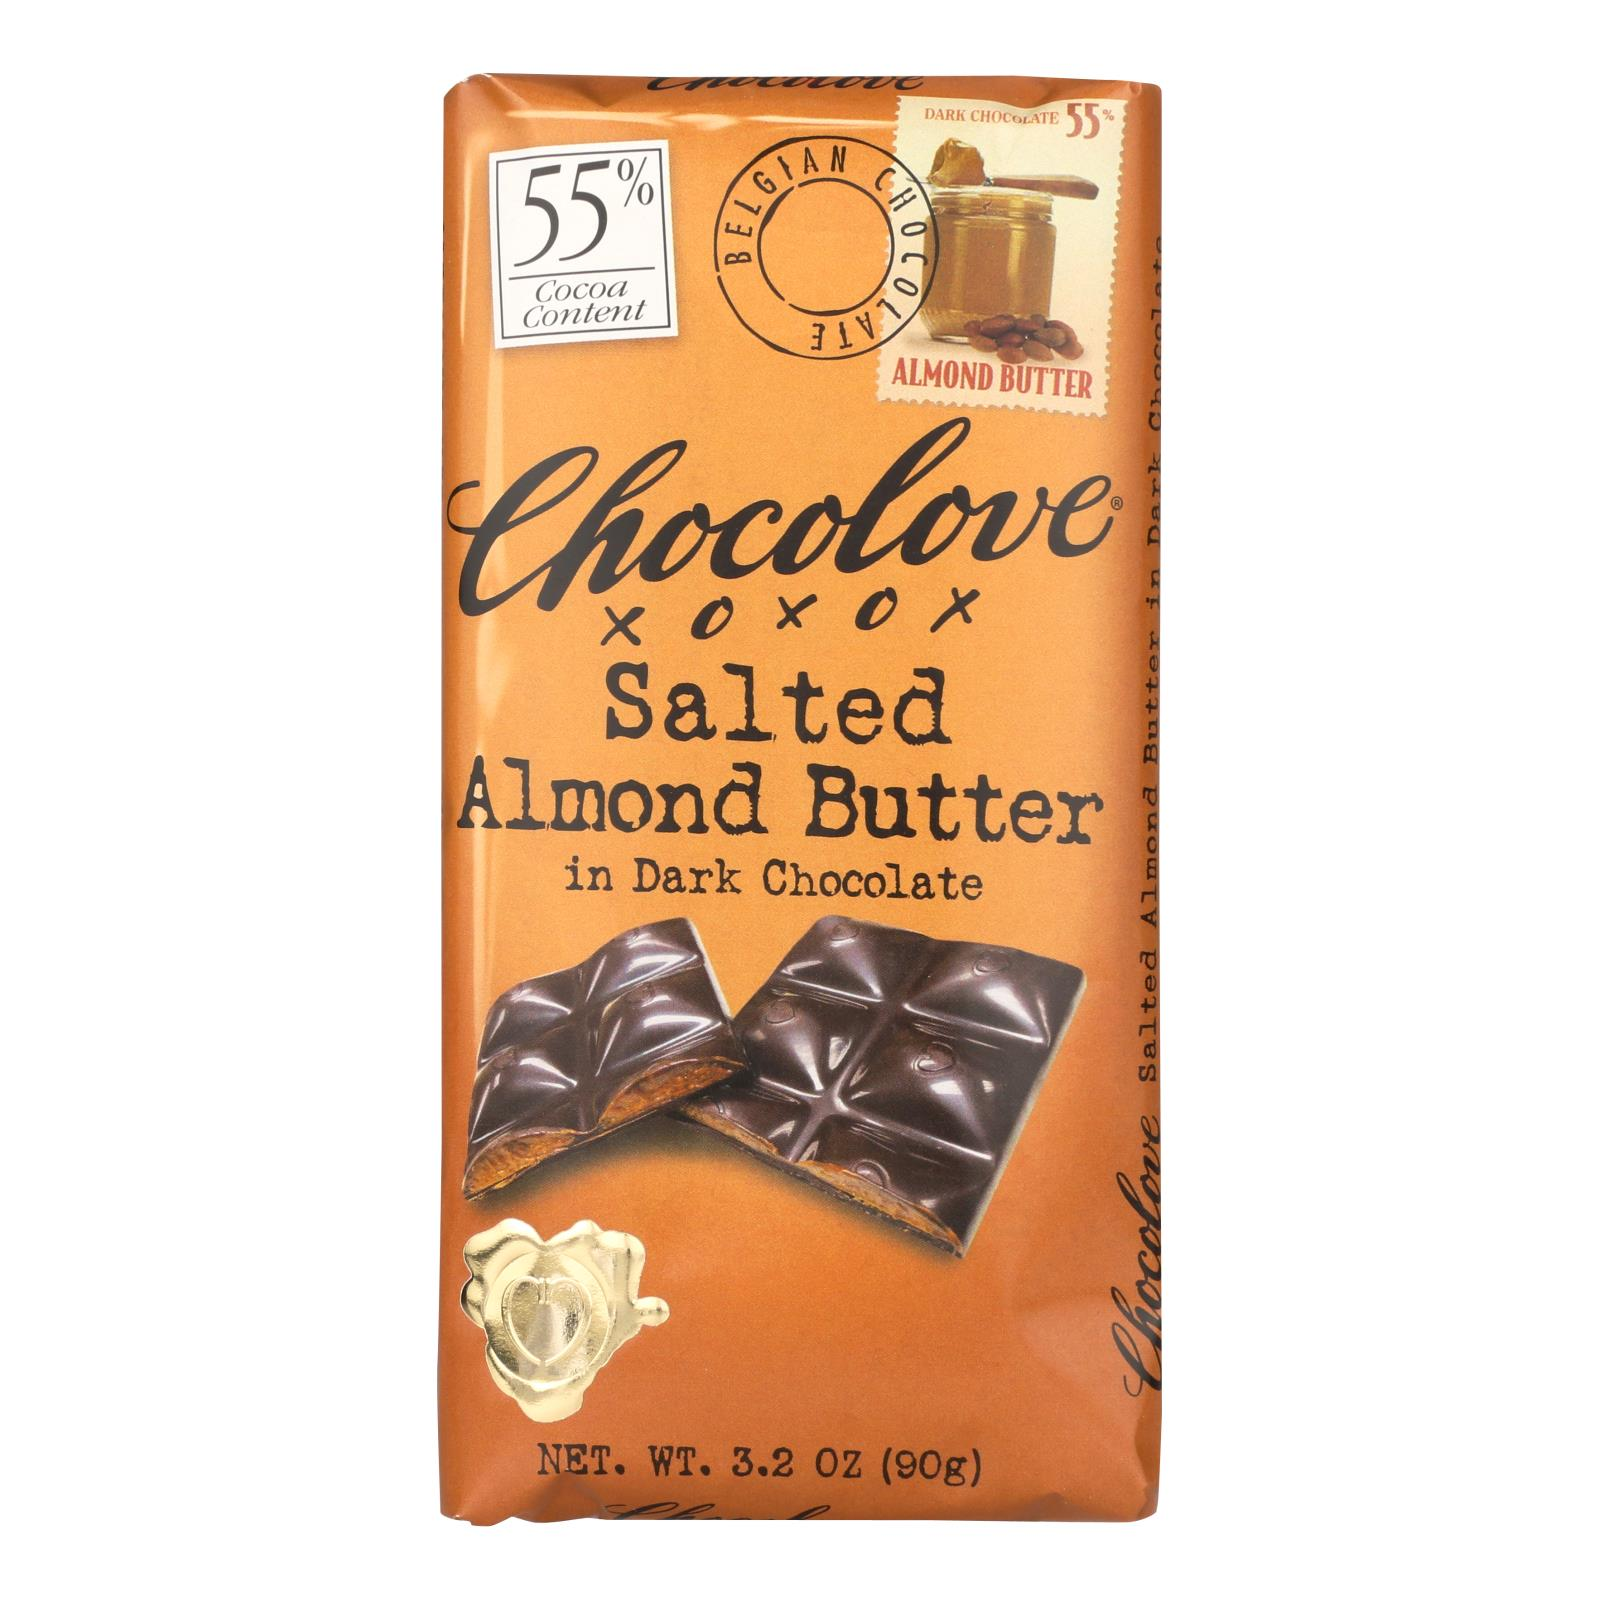 Chocolove Xoxox - Dark Chocolate Bar - Salted Almond Butter - Case of 10 - 3.2 oz